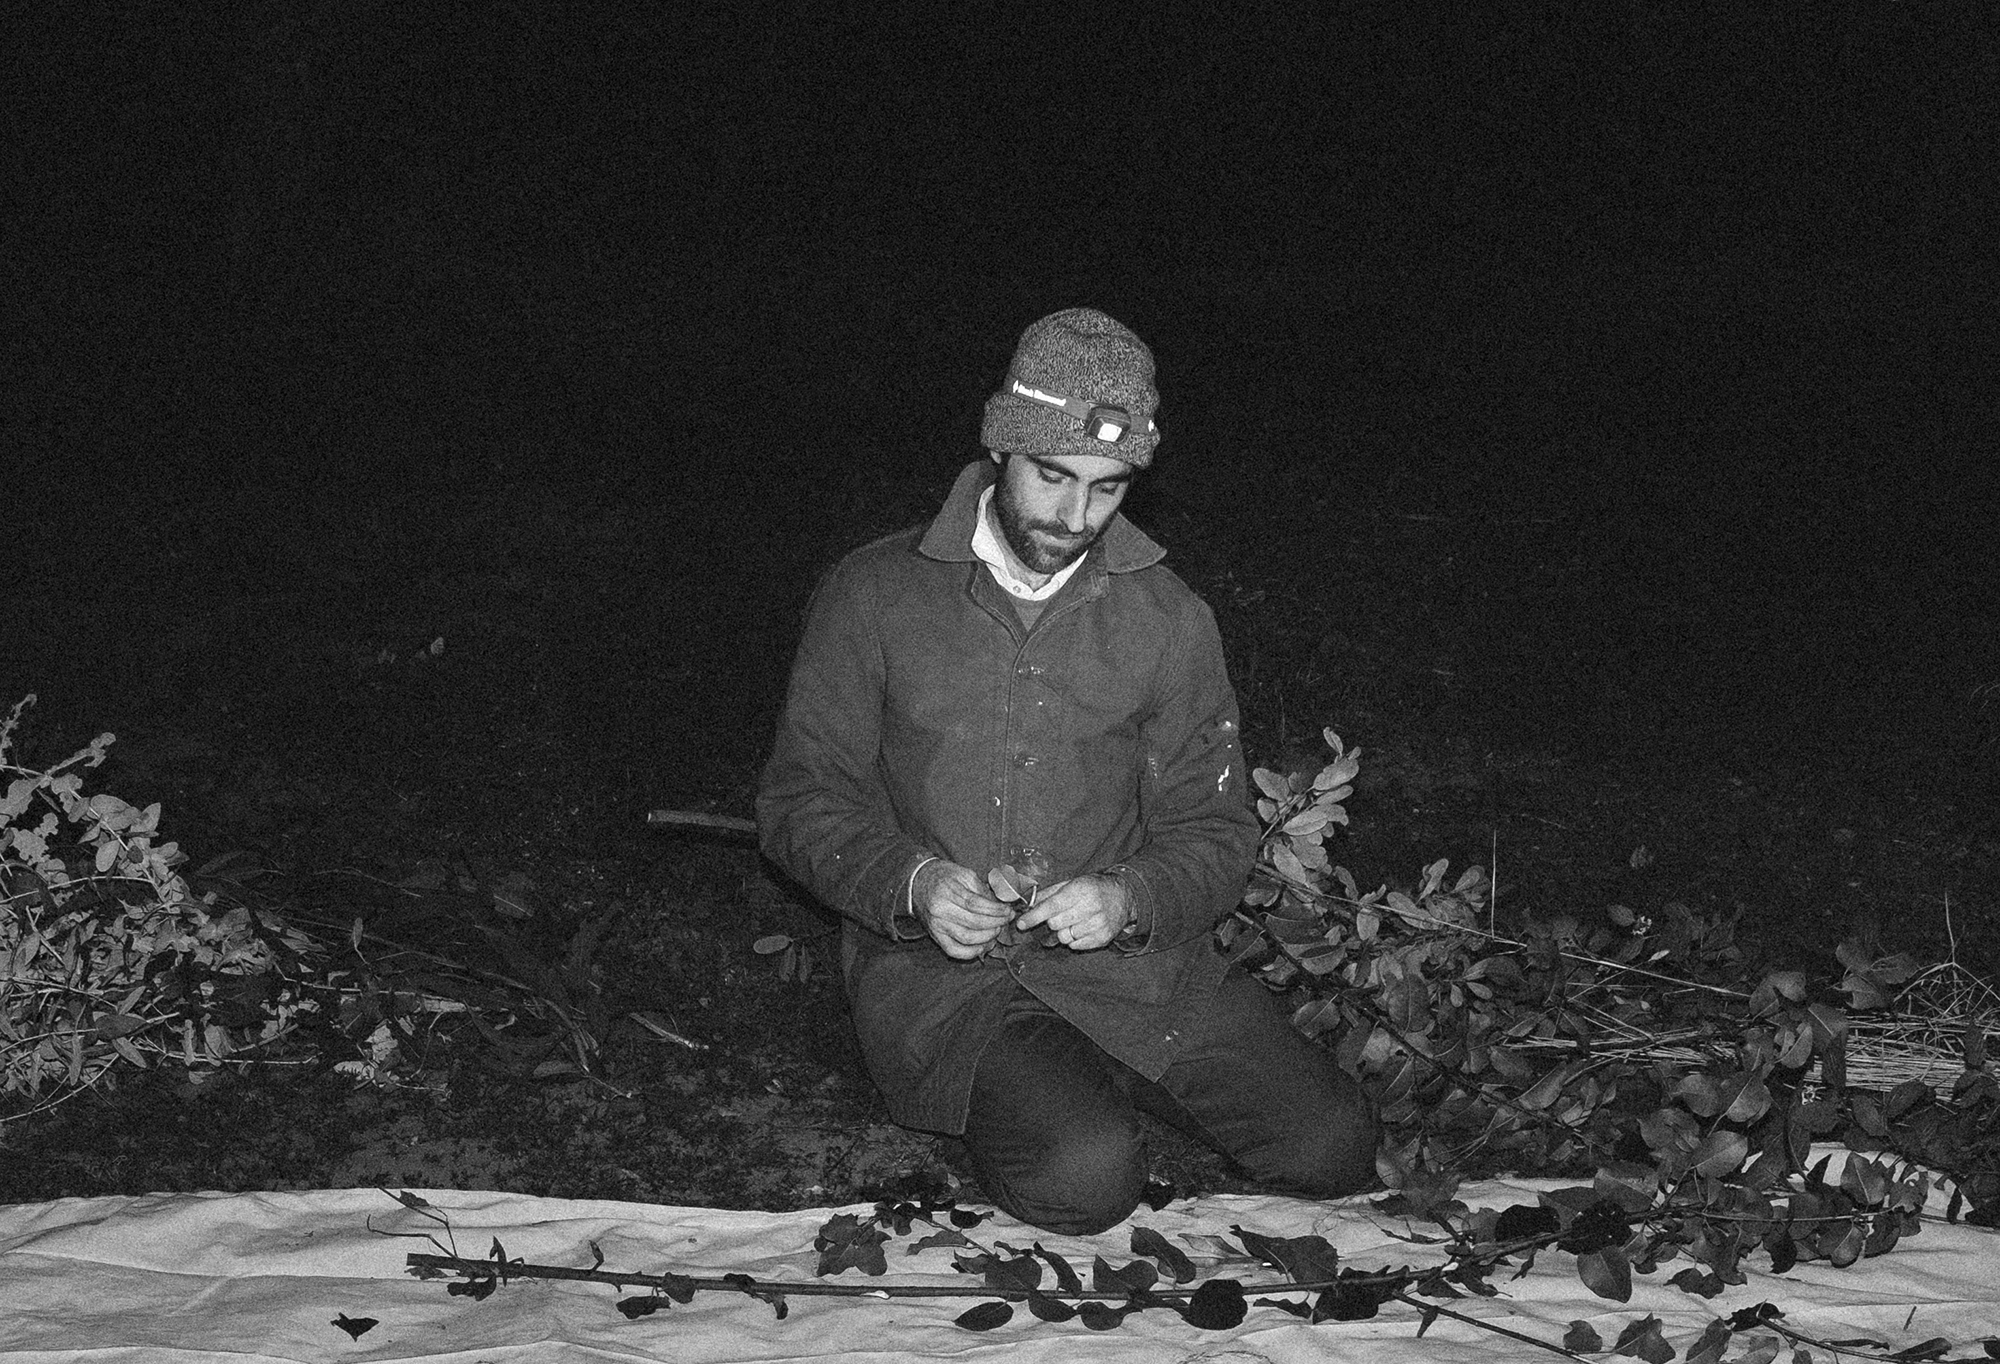 Studio Visit: Artist Sam Falls on Working Alone in the Woods at Night, and Why He Doesn't Like Art That's Easily Described